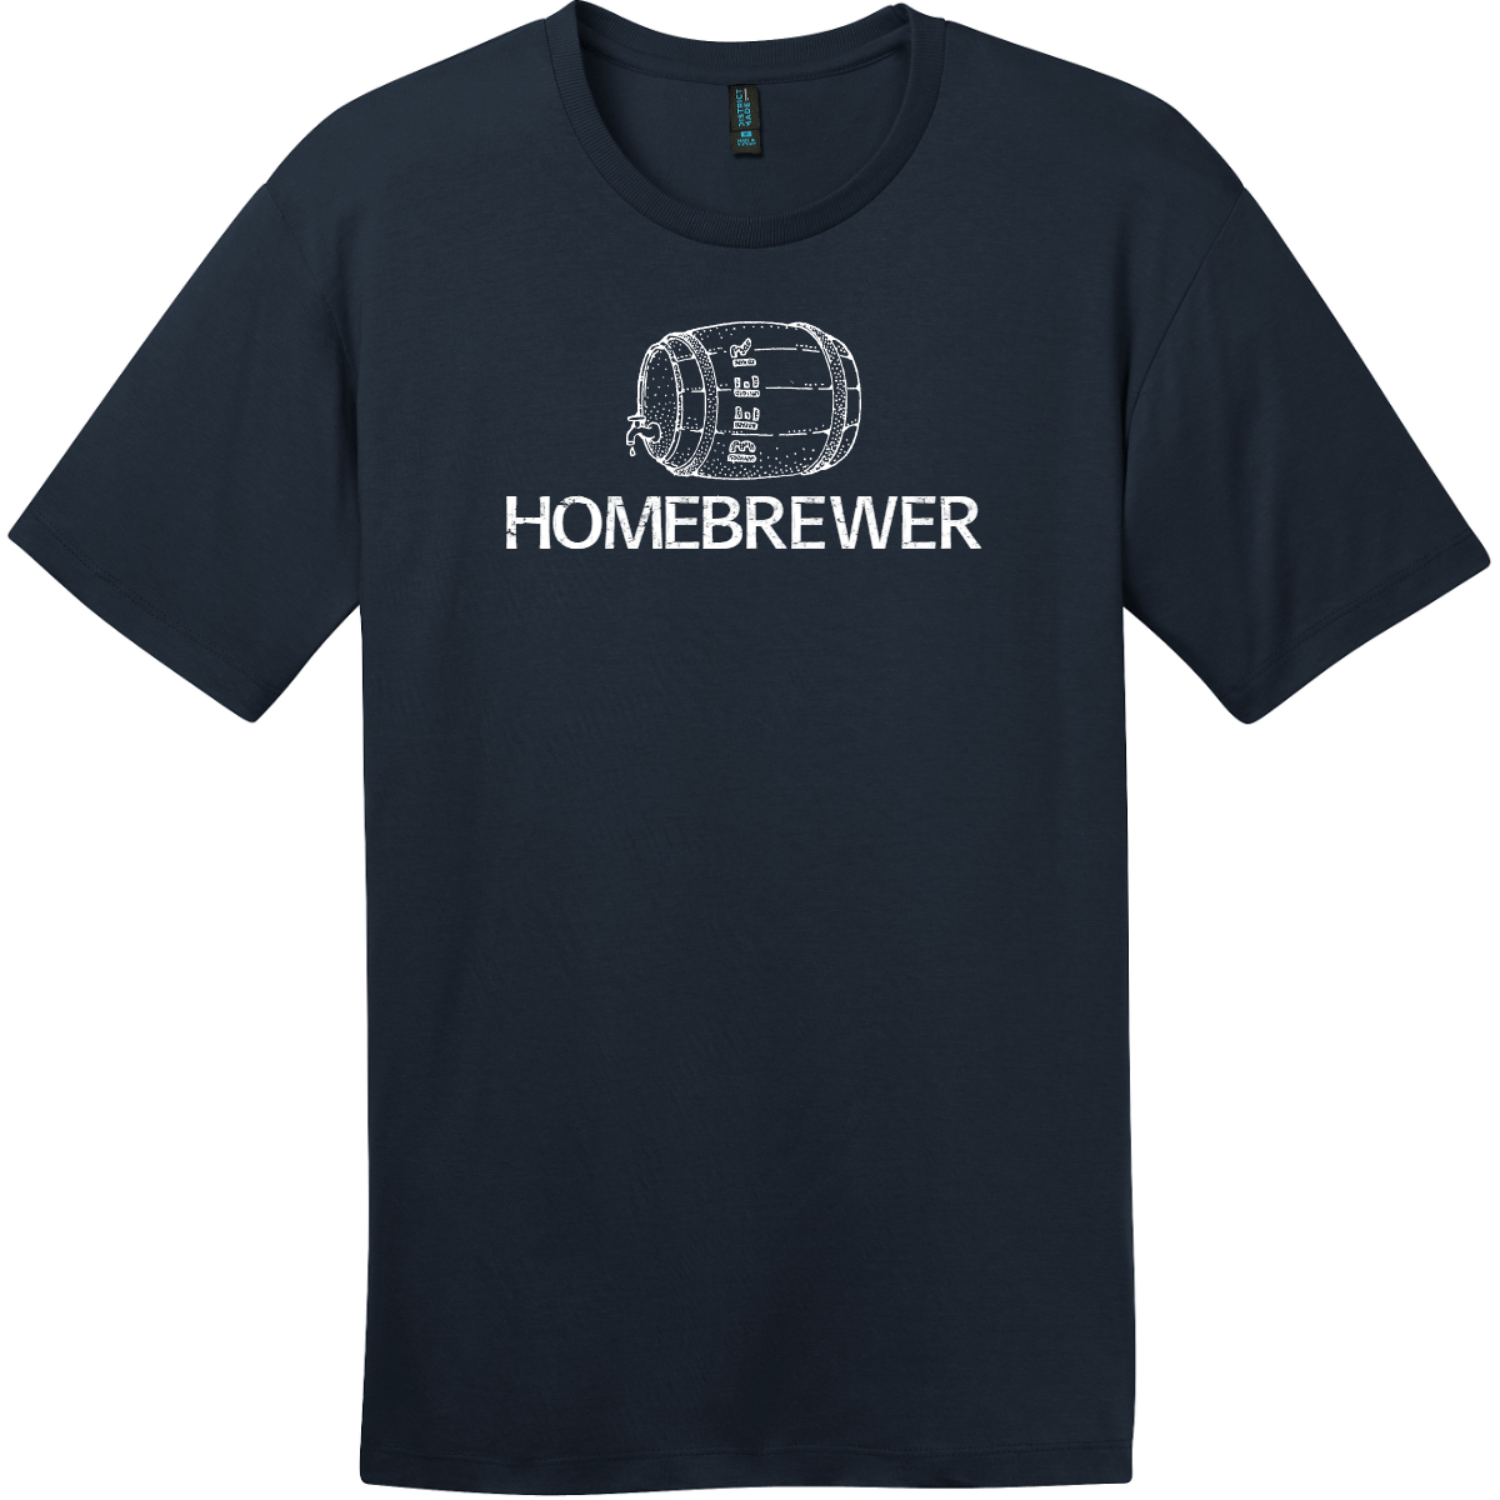 Homebrewer Beer T-Shirt New Navy District Perfect Weight Tee DT104